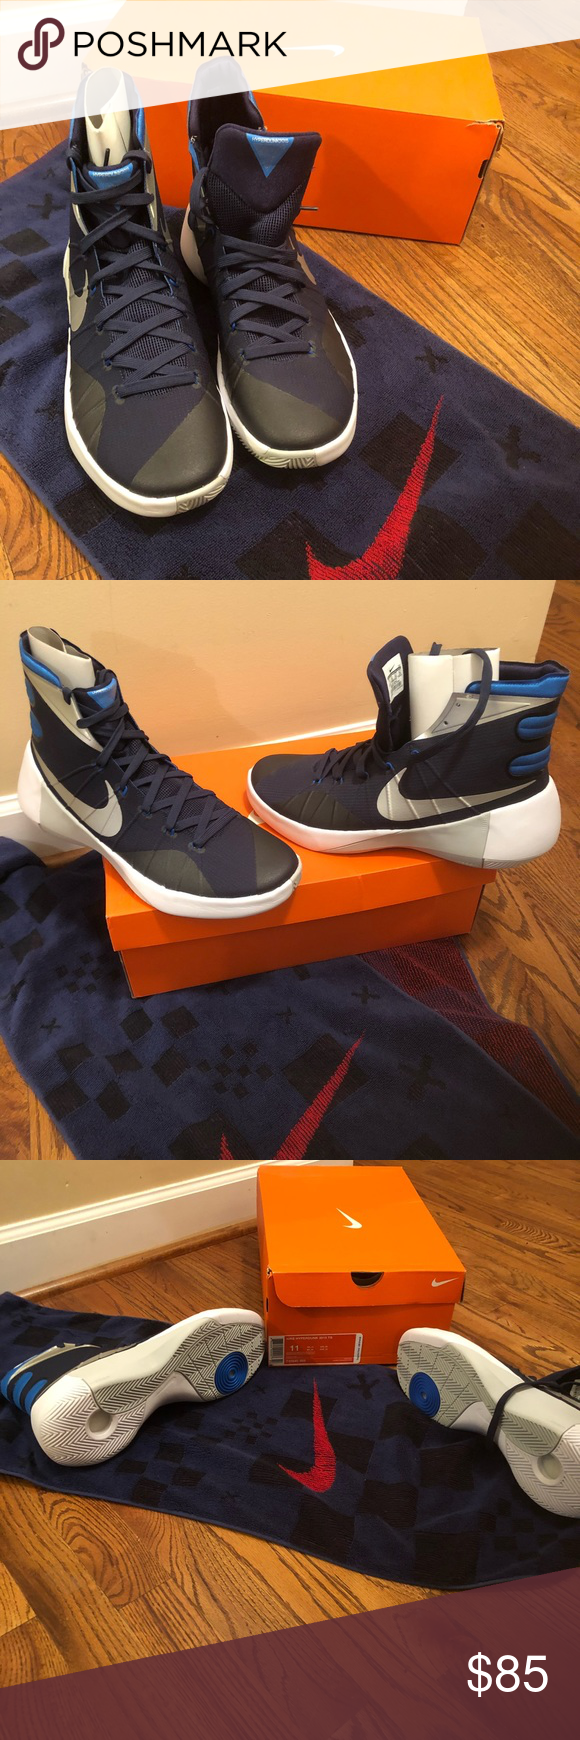 a98eed90ddd5 Nike Hyperdunk 2015 TB Men s Basketball Shoes Navy Blue basketball shoe  hyper fuse rubber sole. Light weight. Great for serious basketball players.  Nike ...